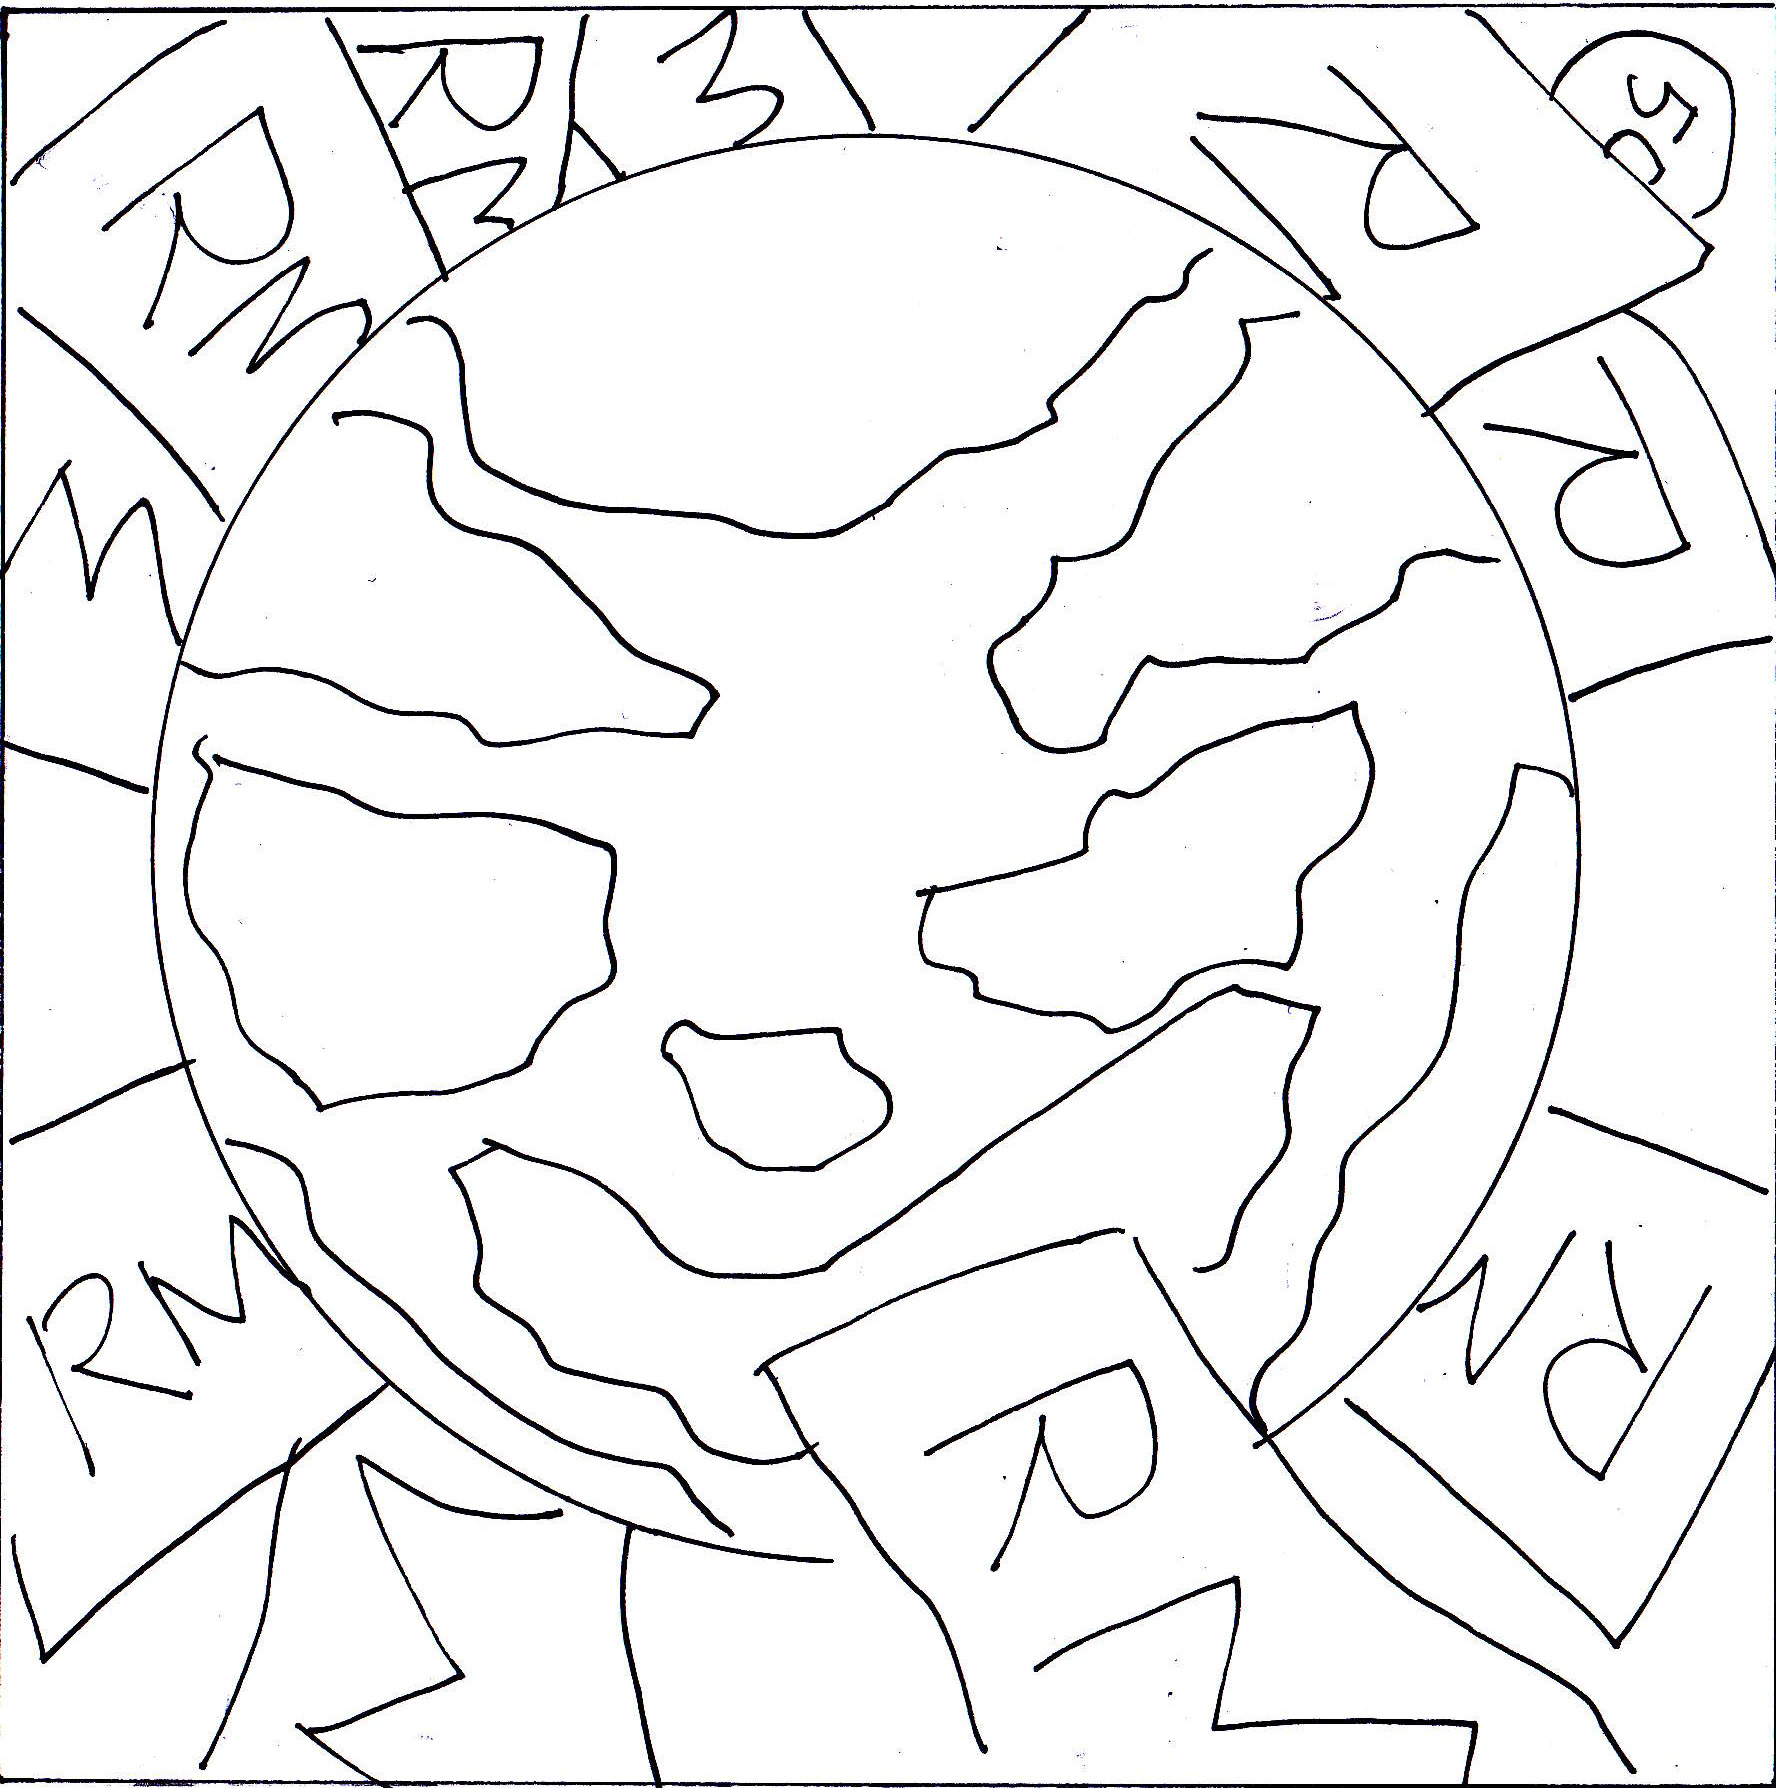 Water pollution drawing coloring pages for Water pollution coloring pages